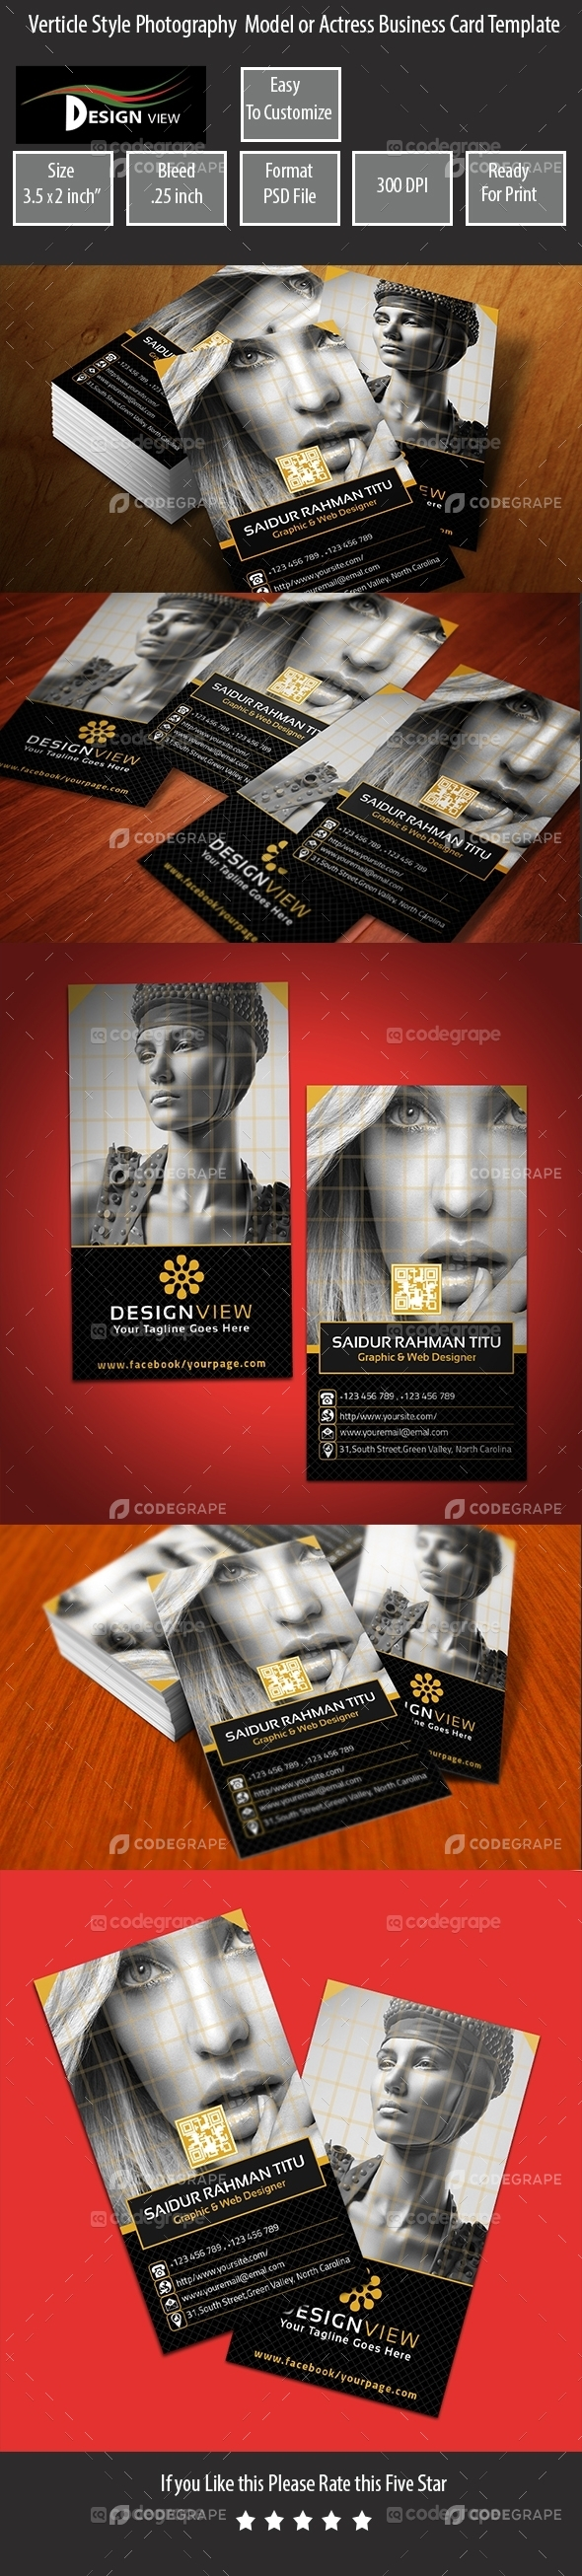 Verticle Style Photography Model or Acrtress Business Card Template